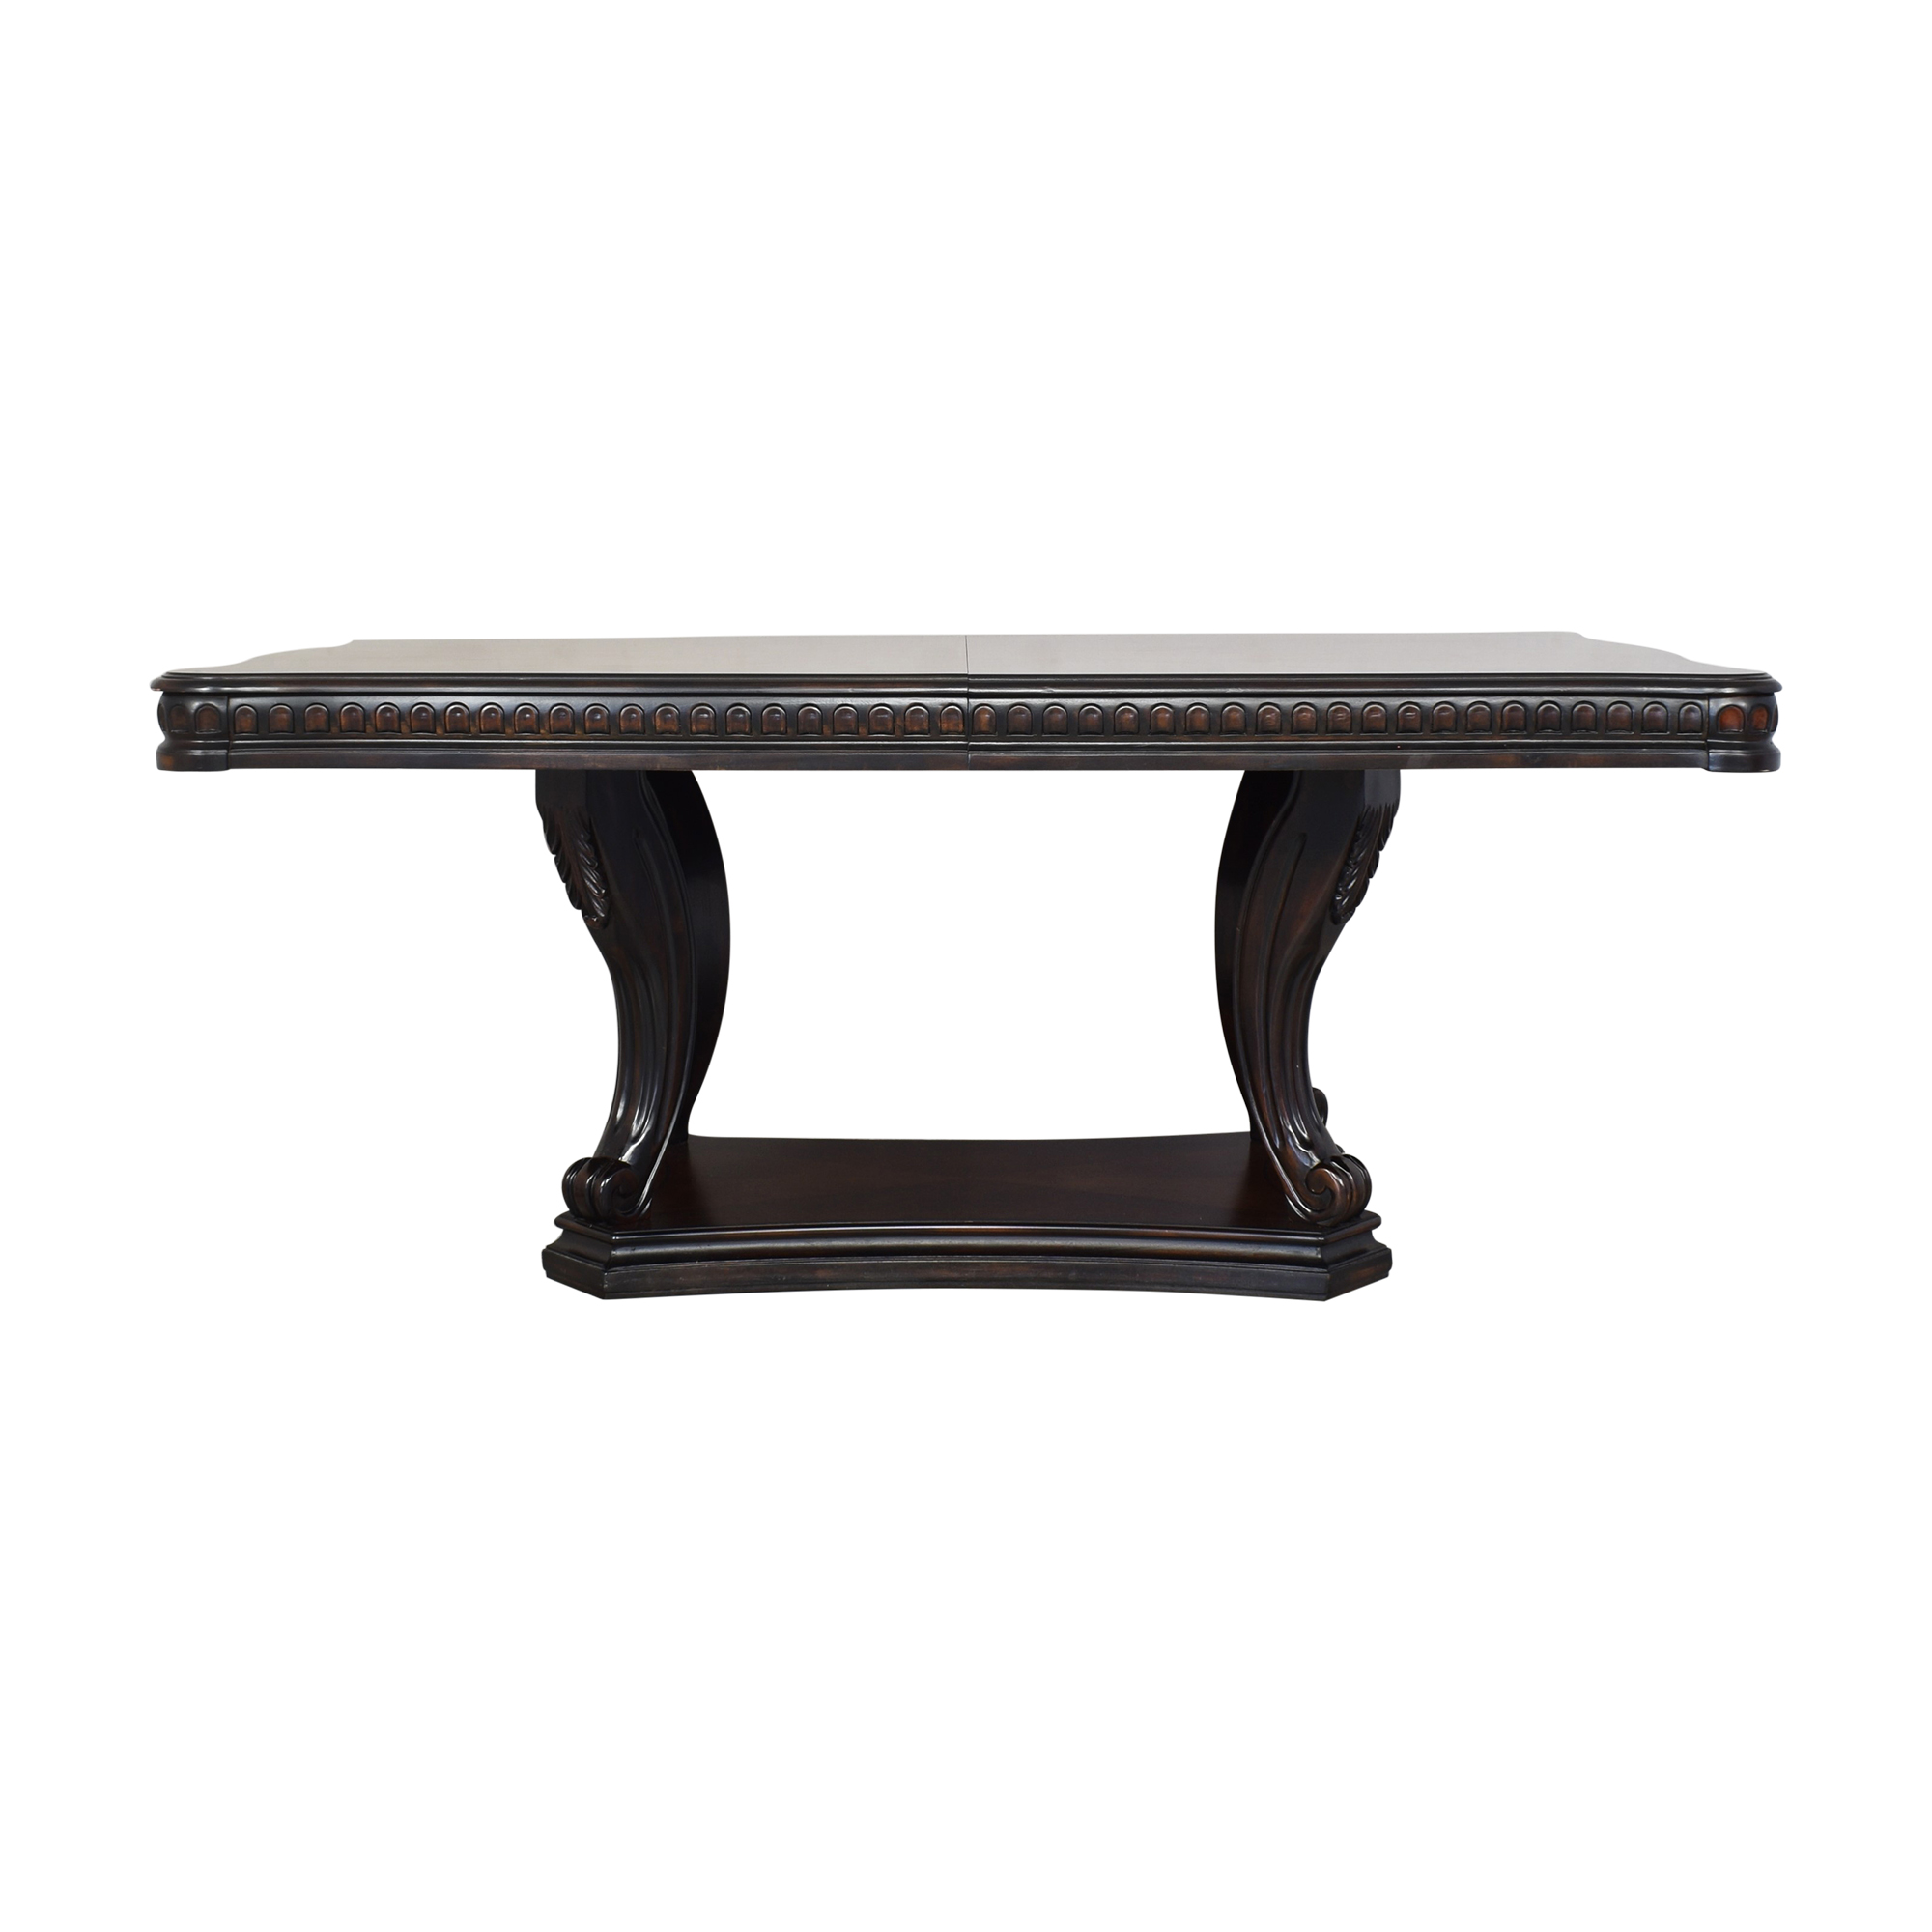 Raymour & Flanigan Raymour & Flanigan Bradford Heights Extendable Dining Table dimensions